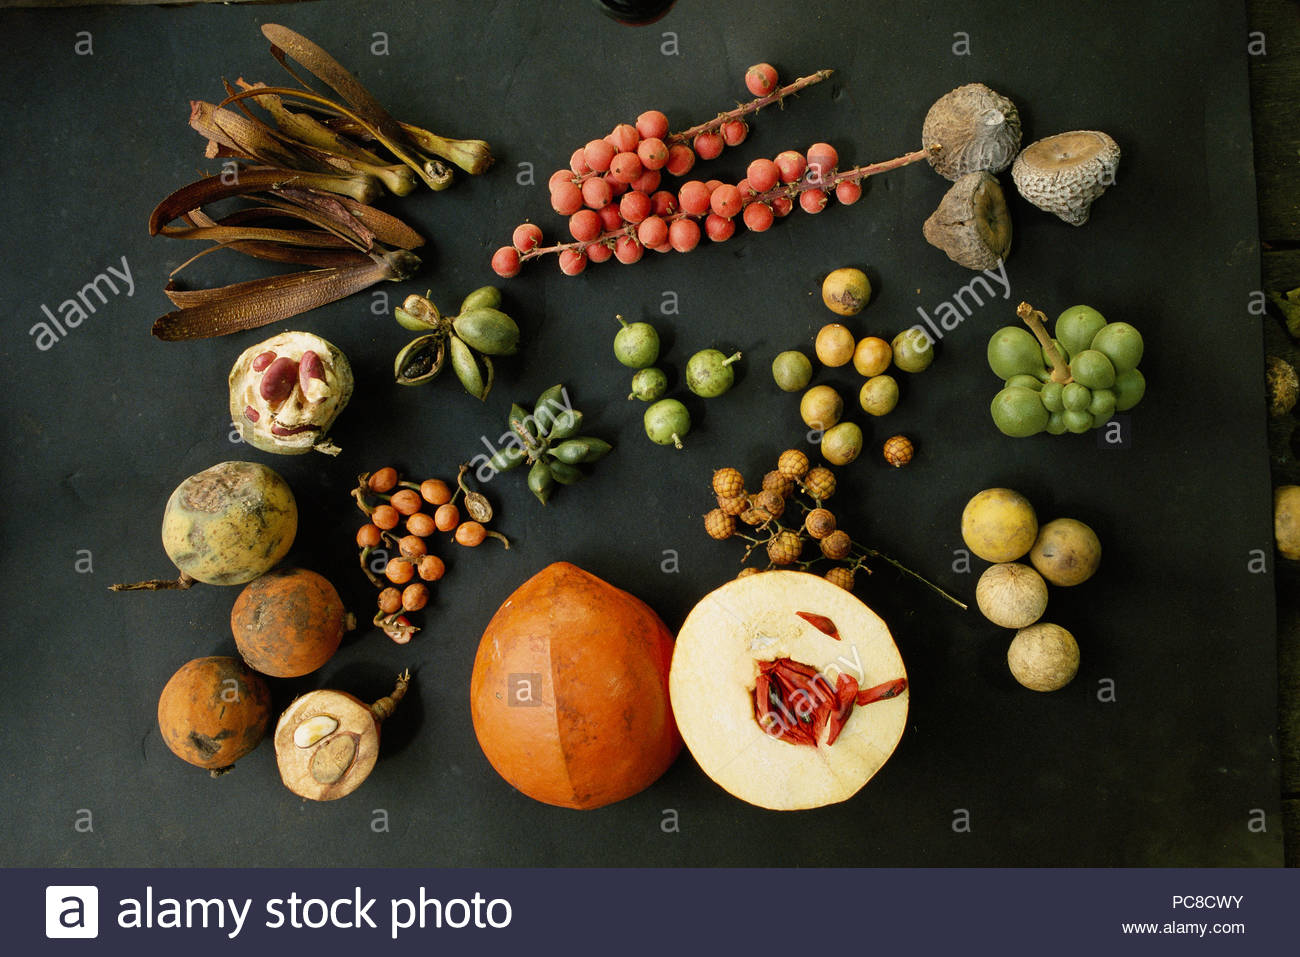 Seeds and seed pods from the rain forest. - Stock Image